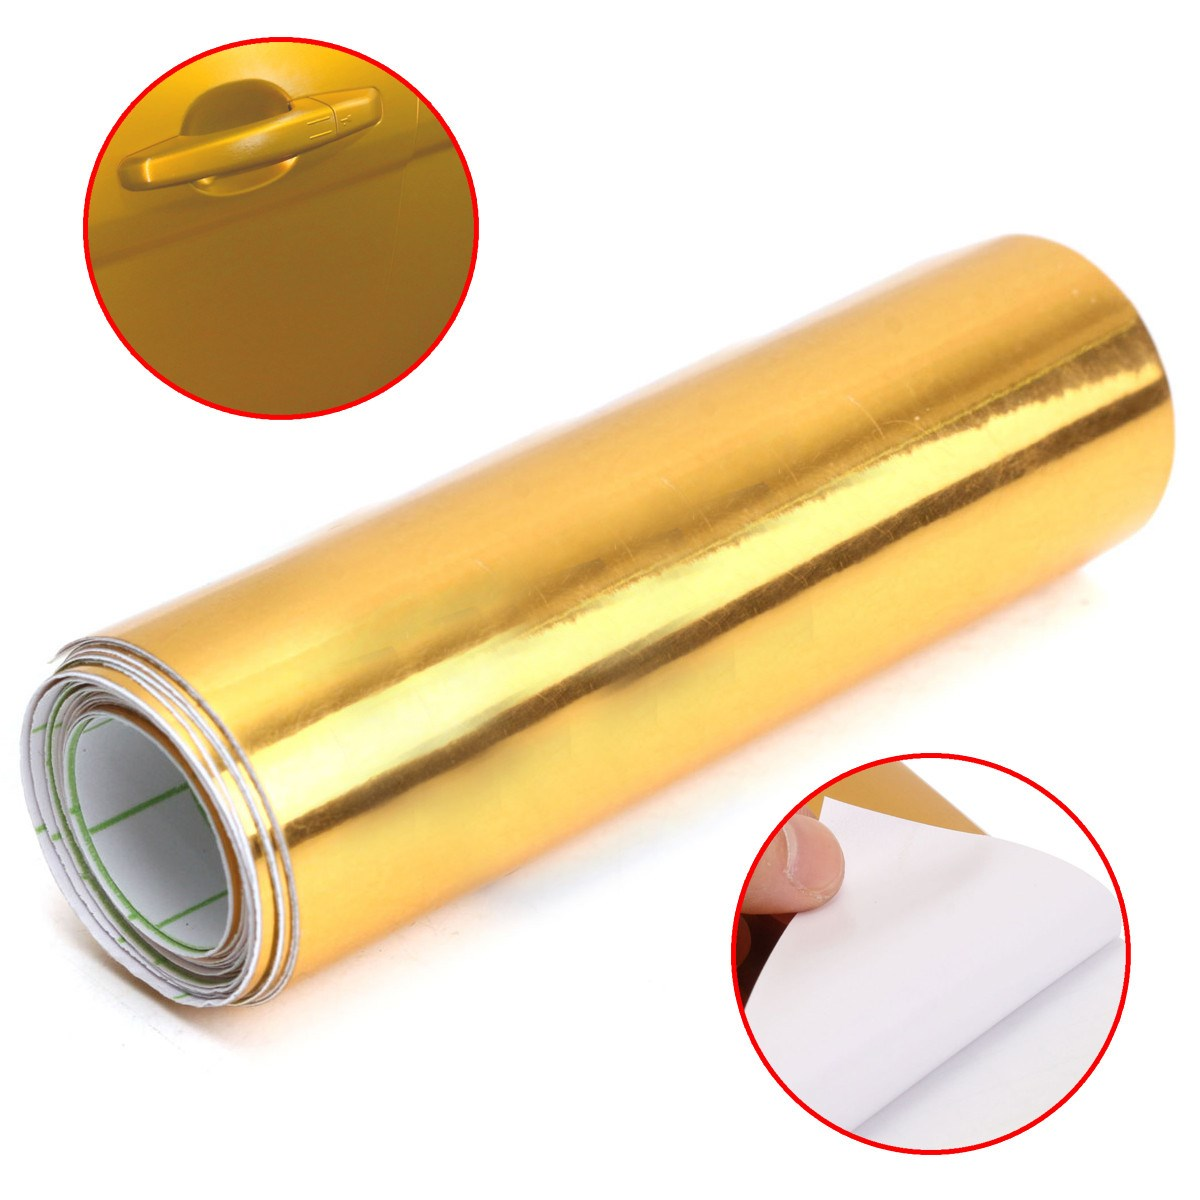 Image 2 - Gold Golden Chrome Mirror Vinyl Wrap Film Car Sticker Decal Bubble Free Air Release DIY Car Styling 10*150cm-in Car Stickers from Automobiles & Motorcycles